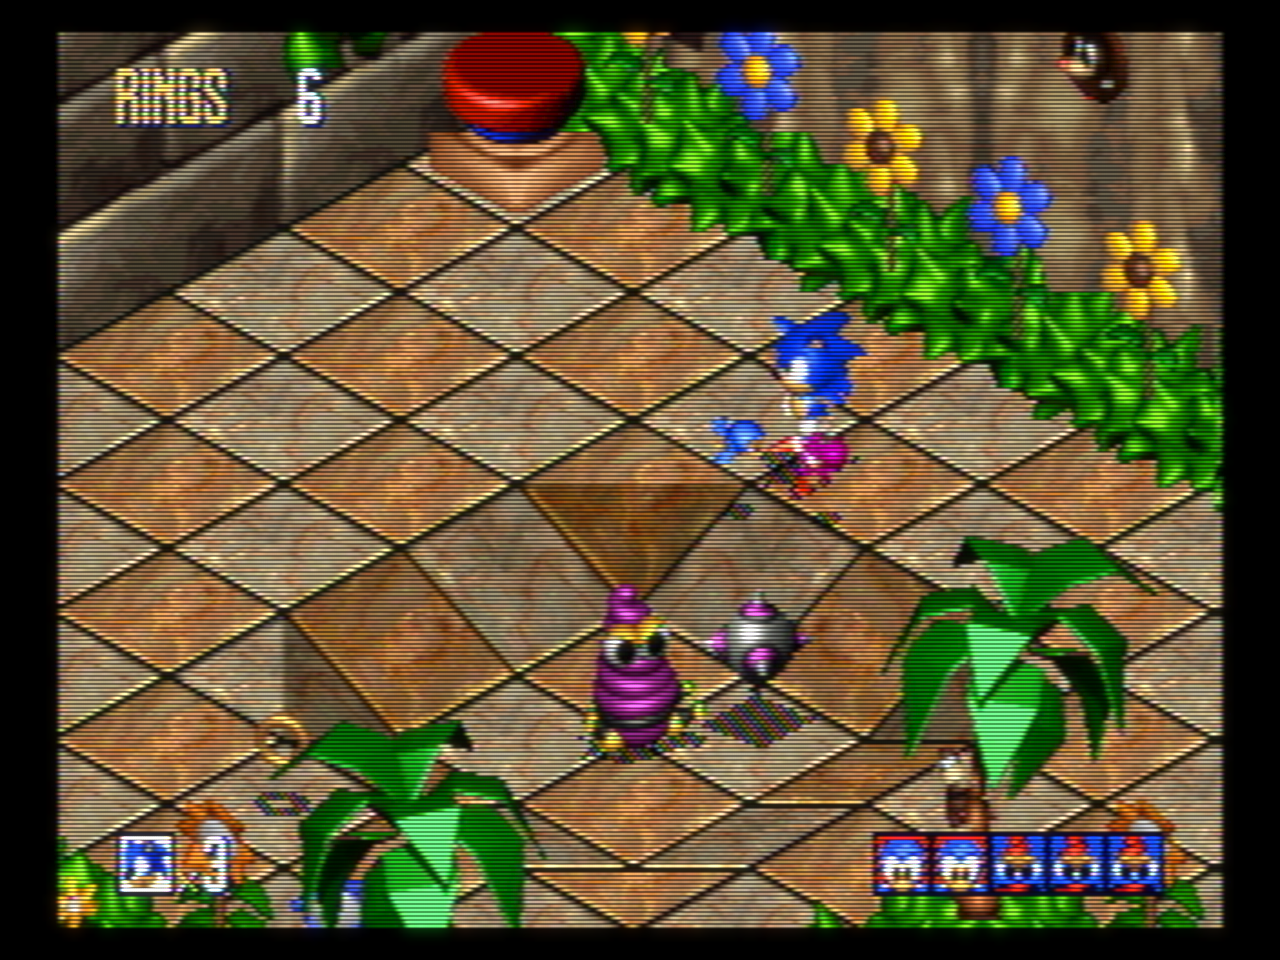 CRT Shaders + Scanlines |OT| Because 1080p is all the p's I